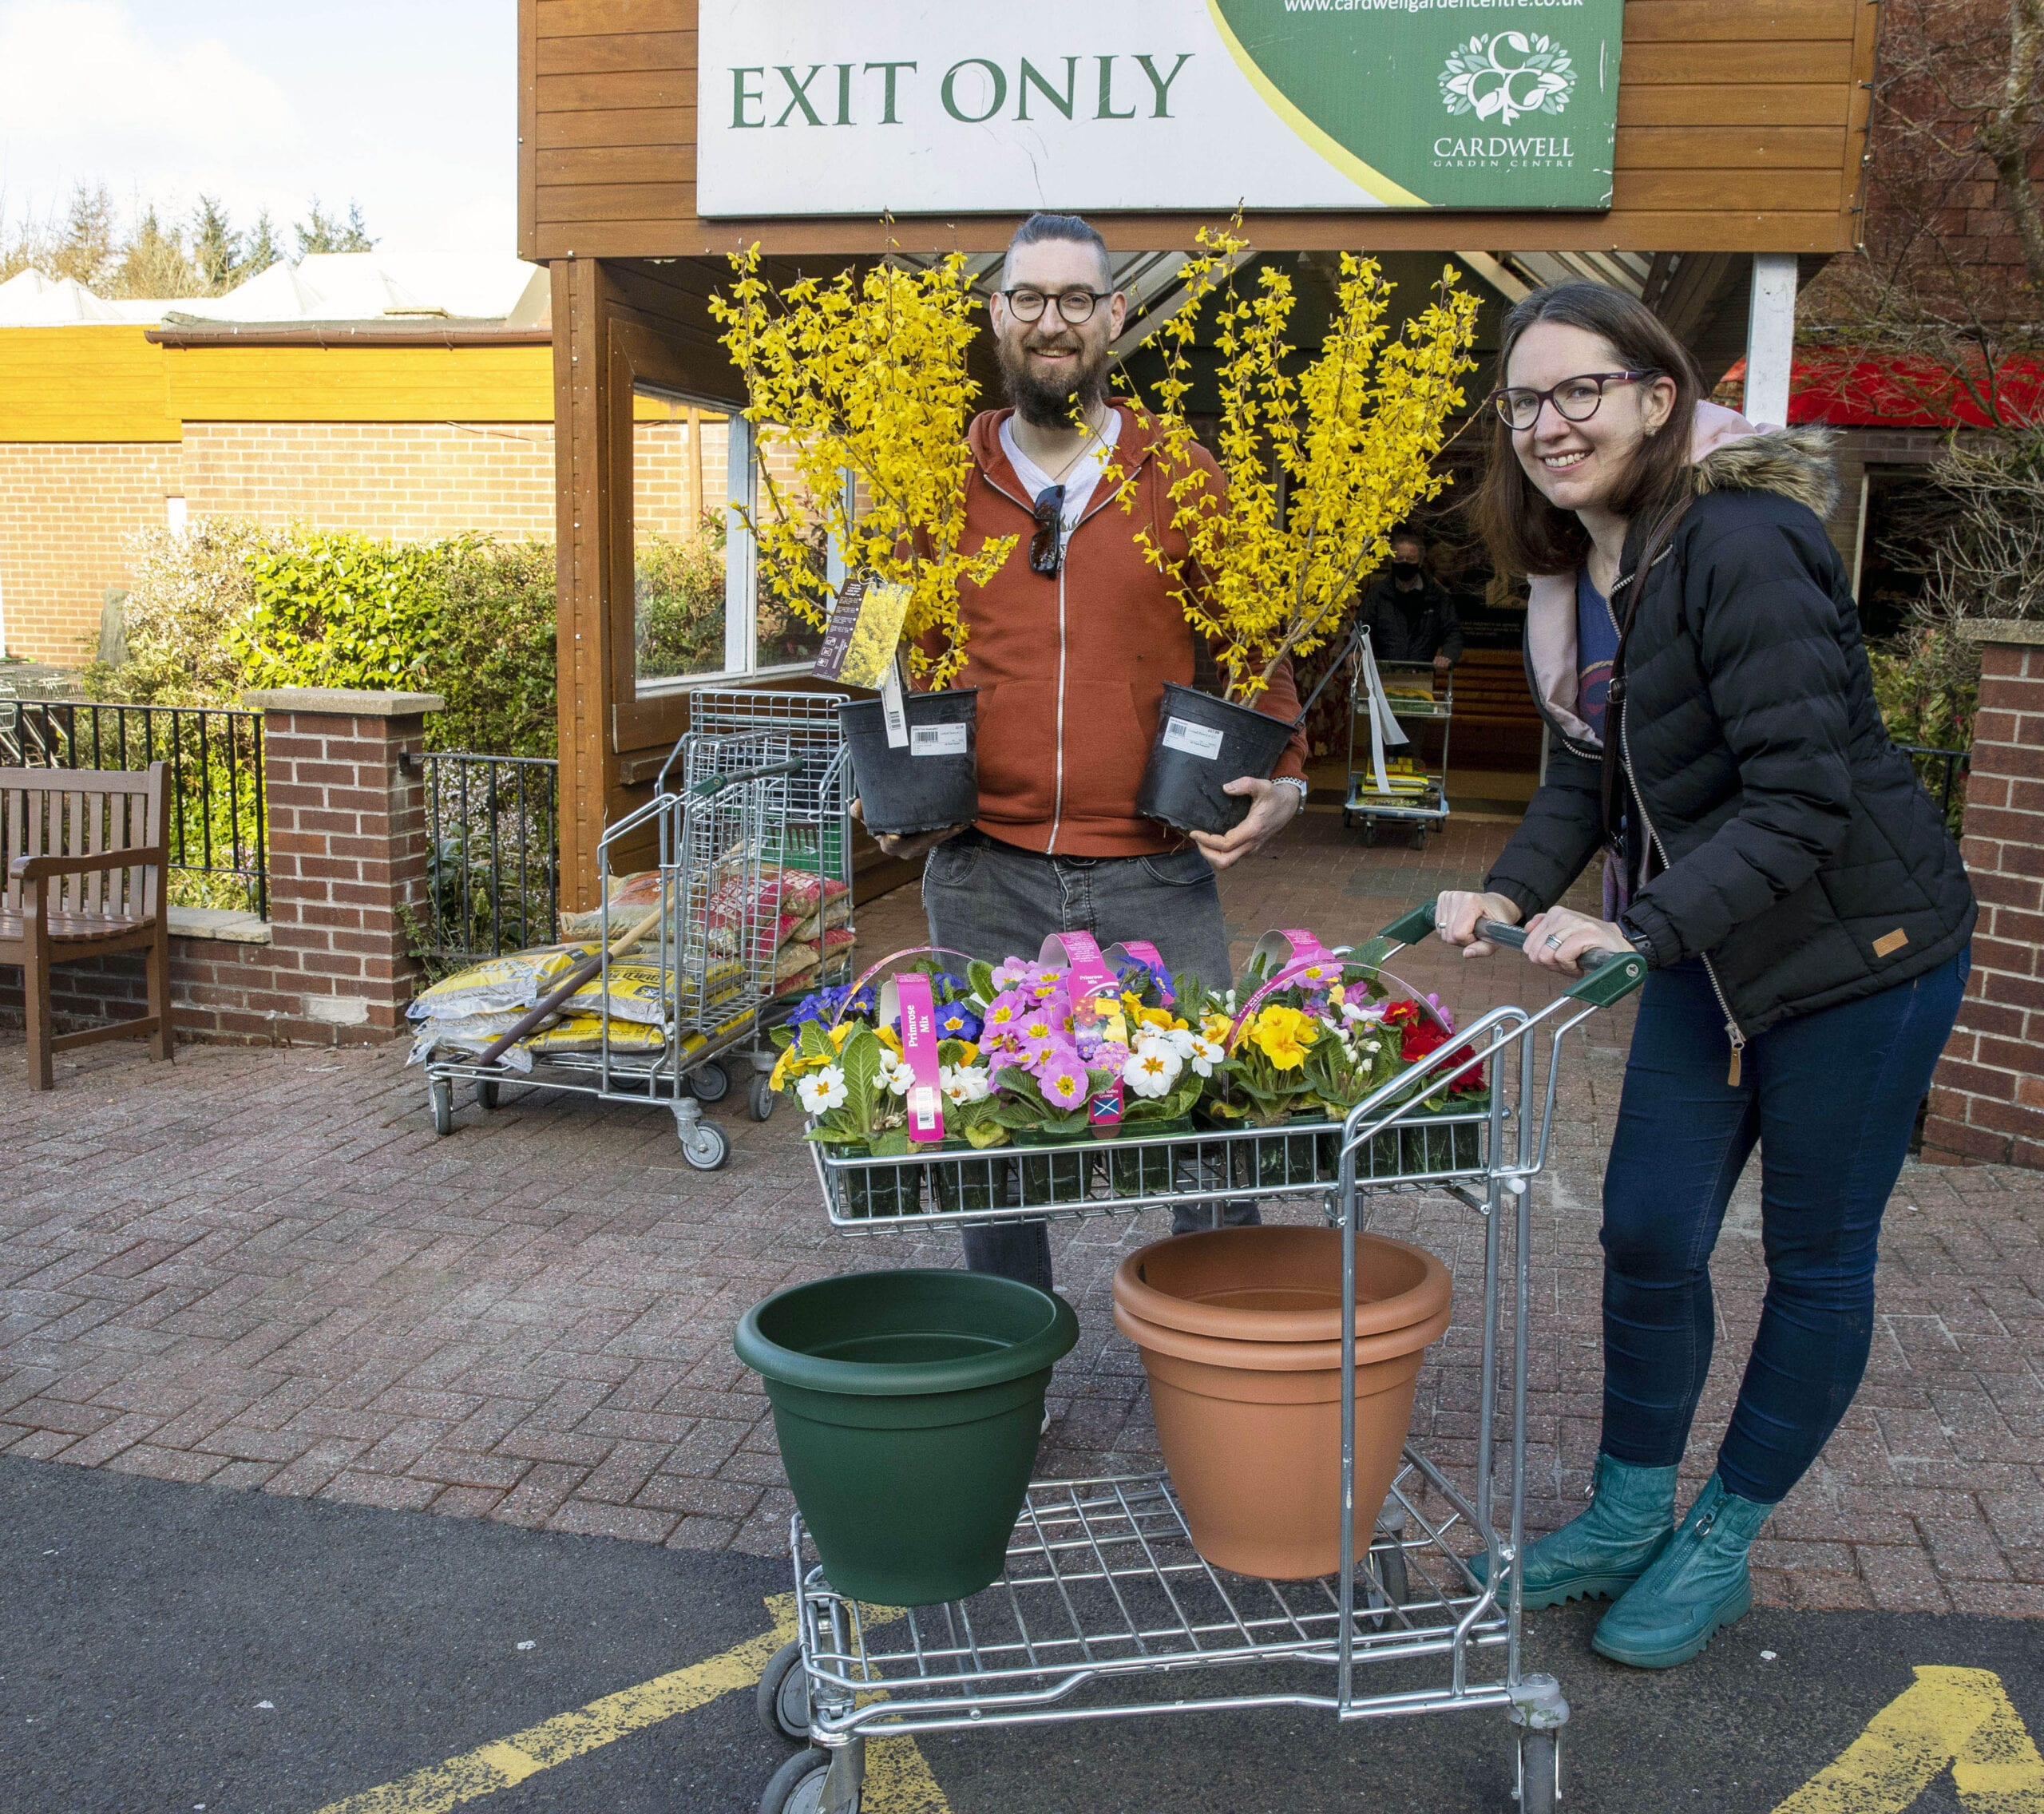 Jumping for joy as Cardwell Garden Centre re-opens